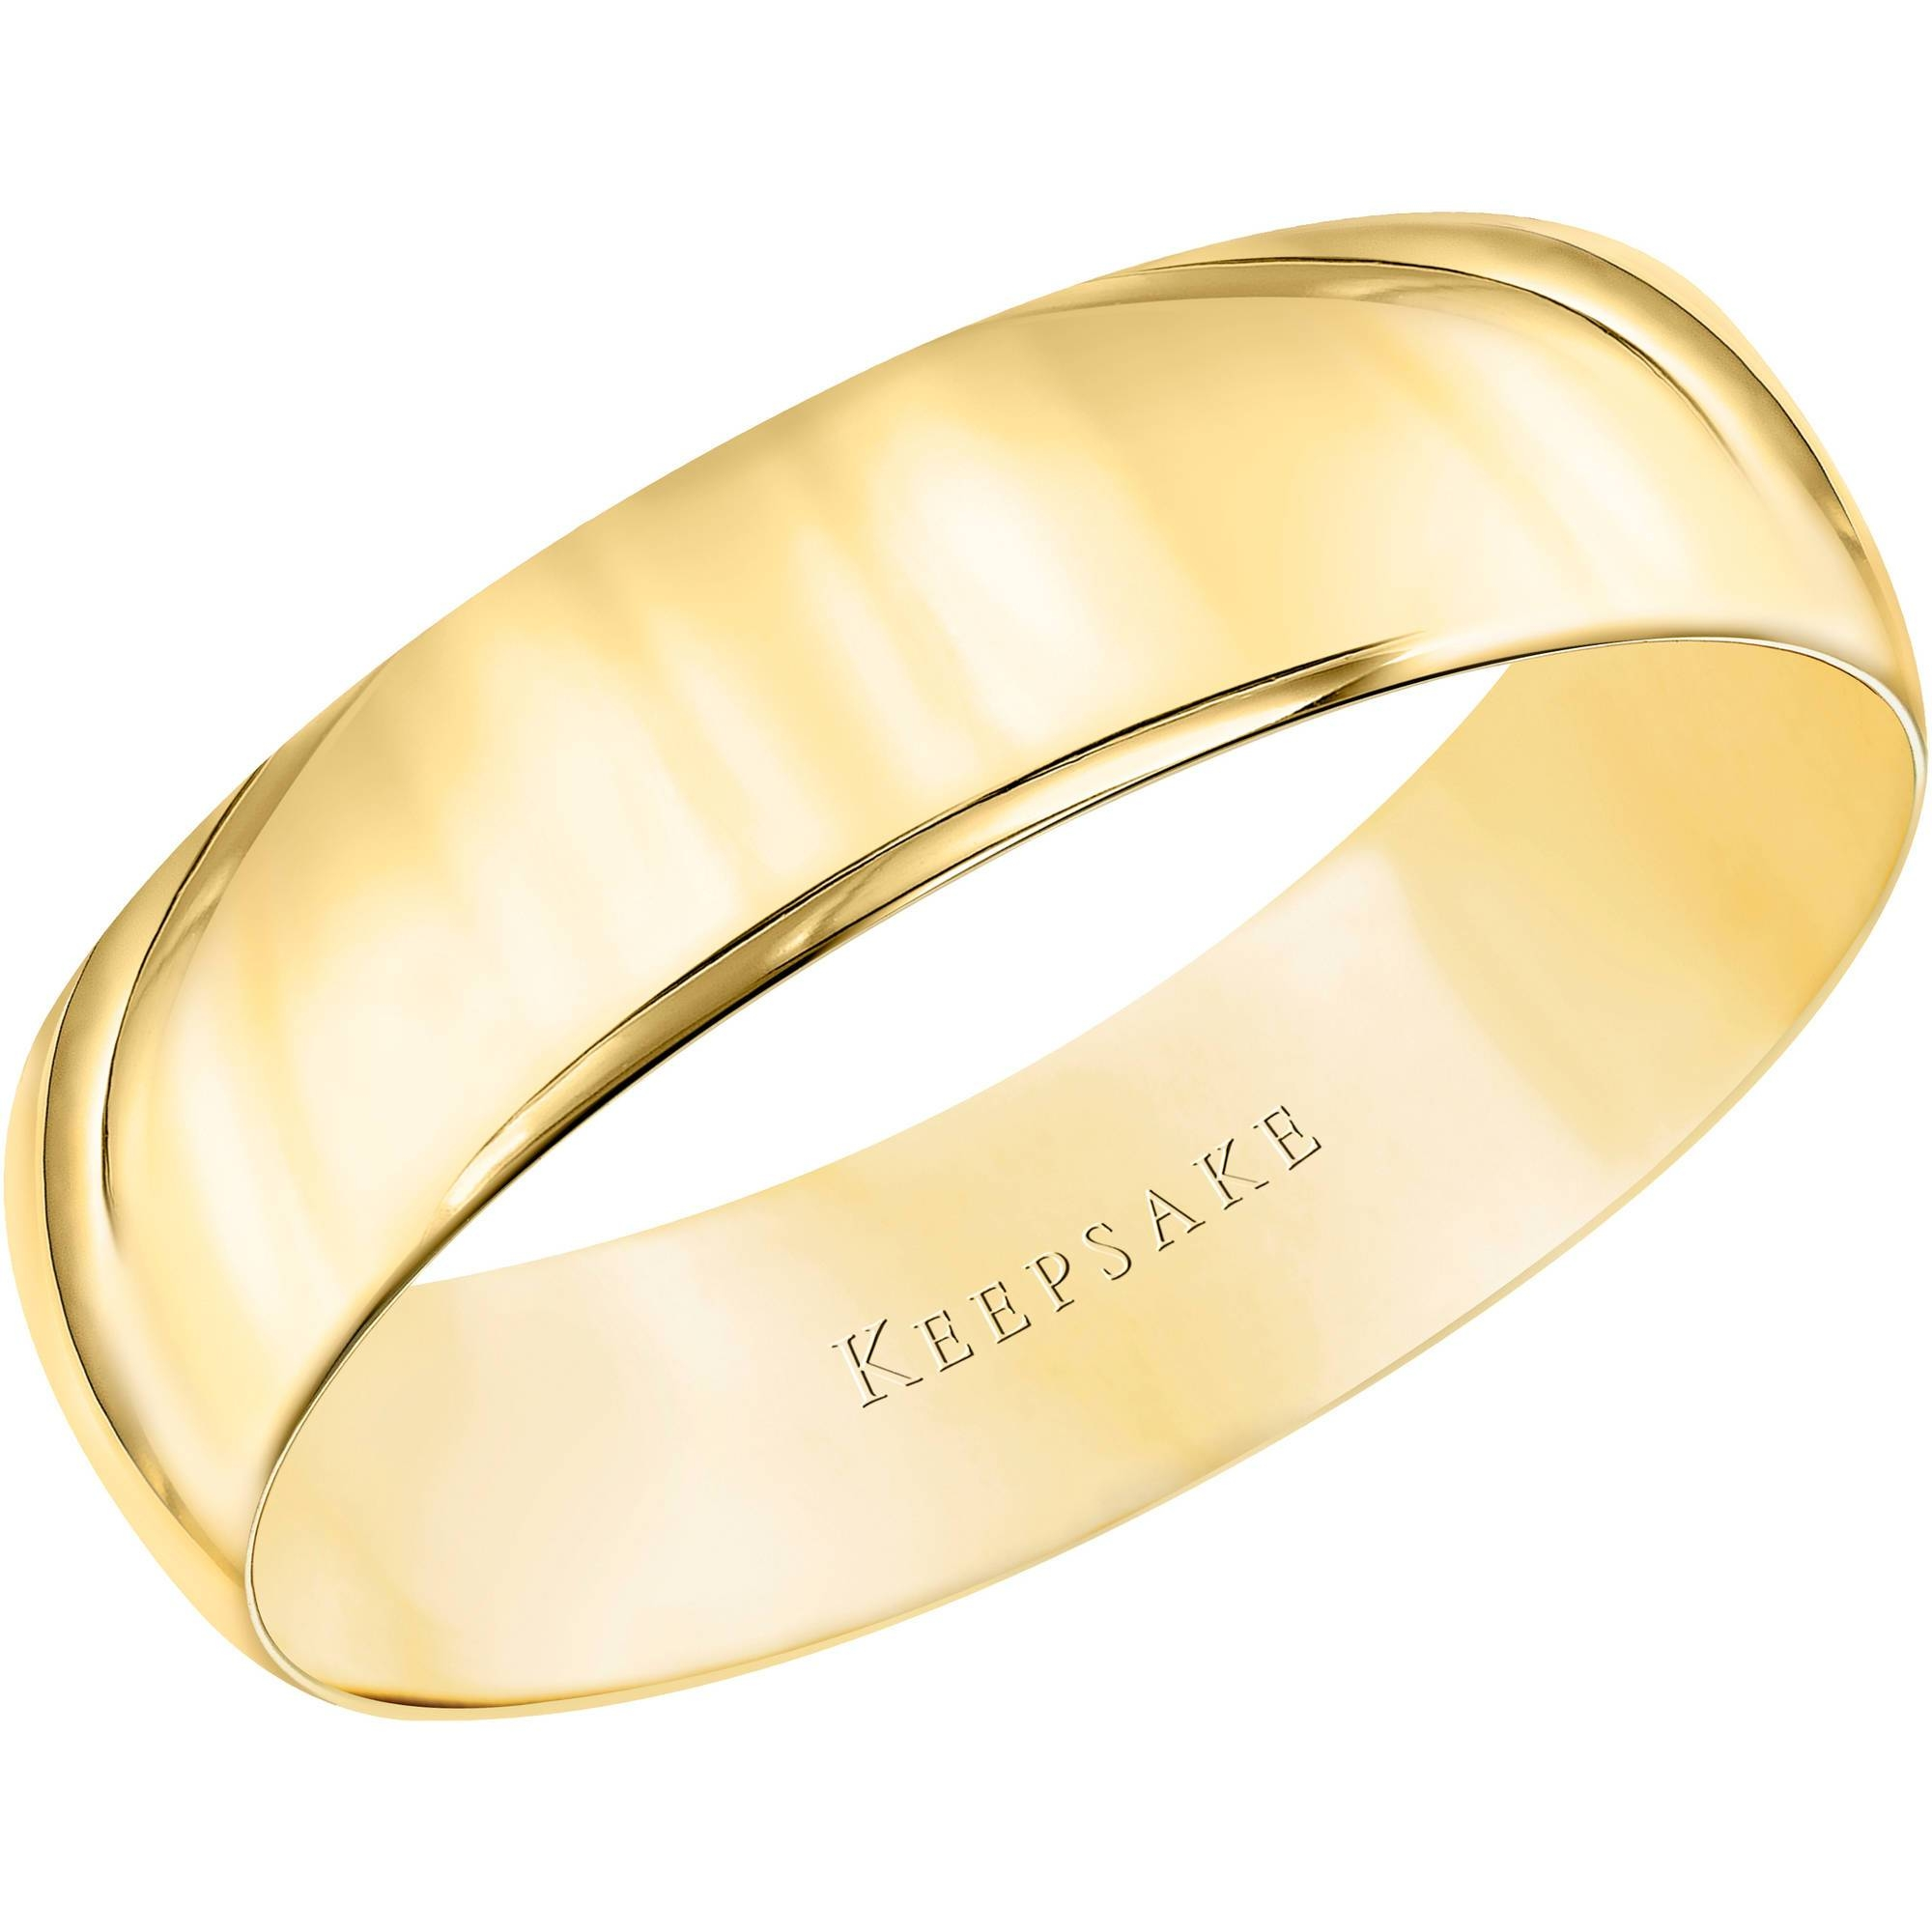 Keepsake 10Kt Yellow Gold Wedding Band With High Polish Finish Throughout Keepsake Wedding Bands (Gallery 1 of 15)